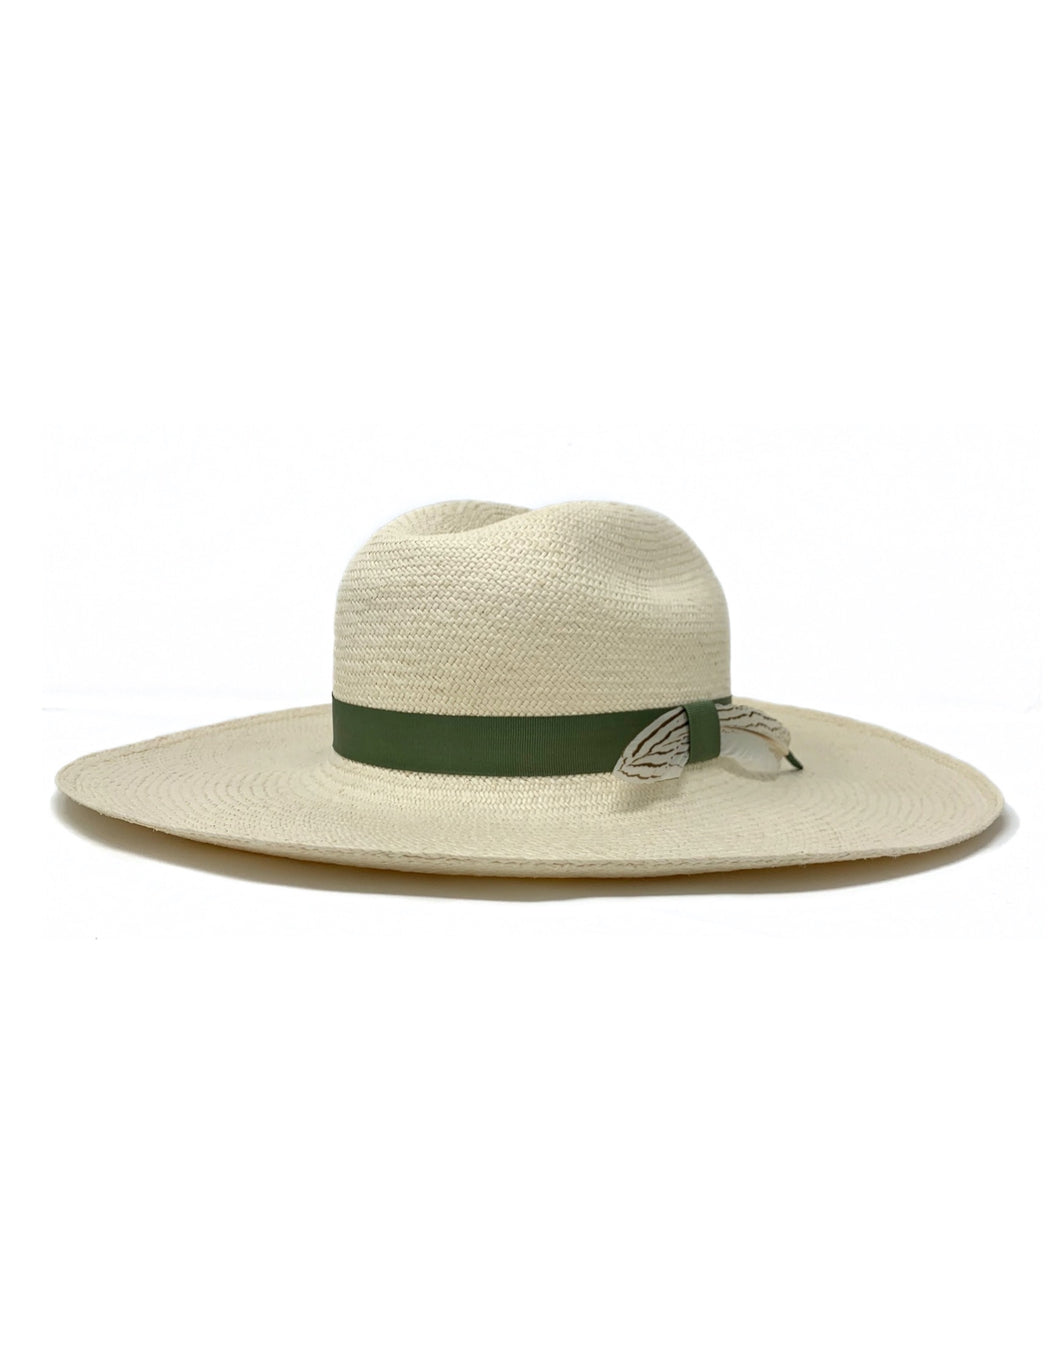 Jana de Luque New Orleans hat